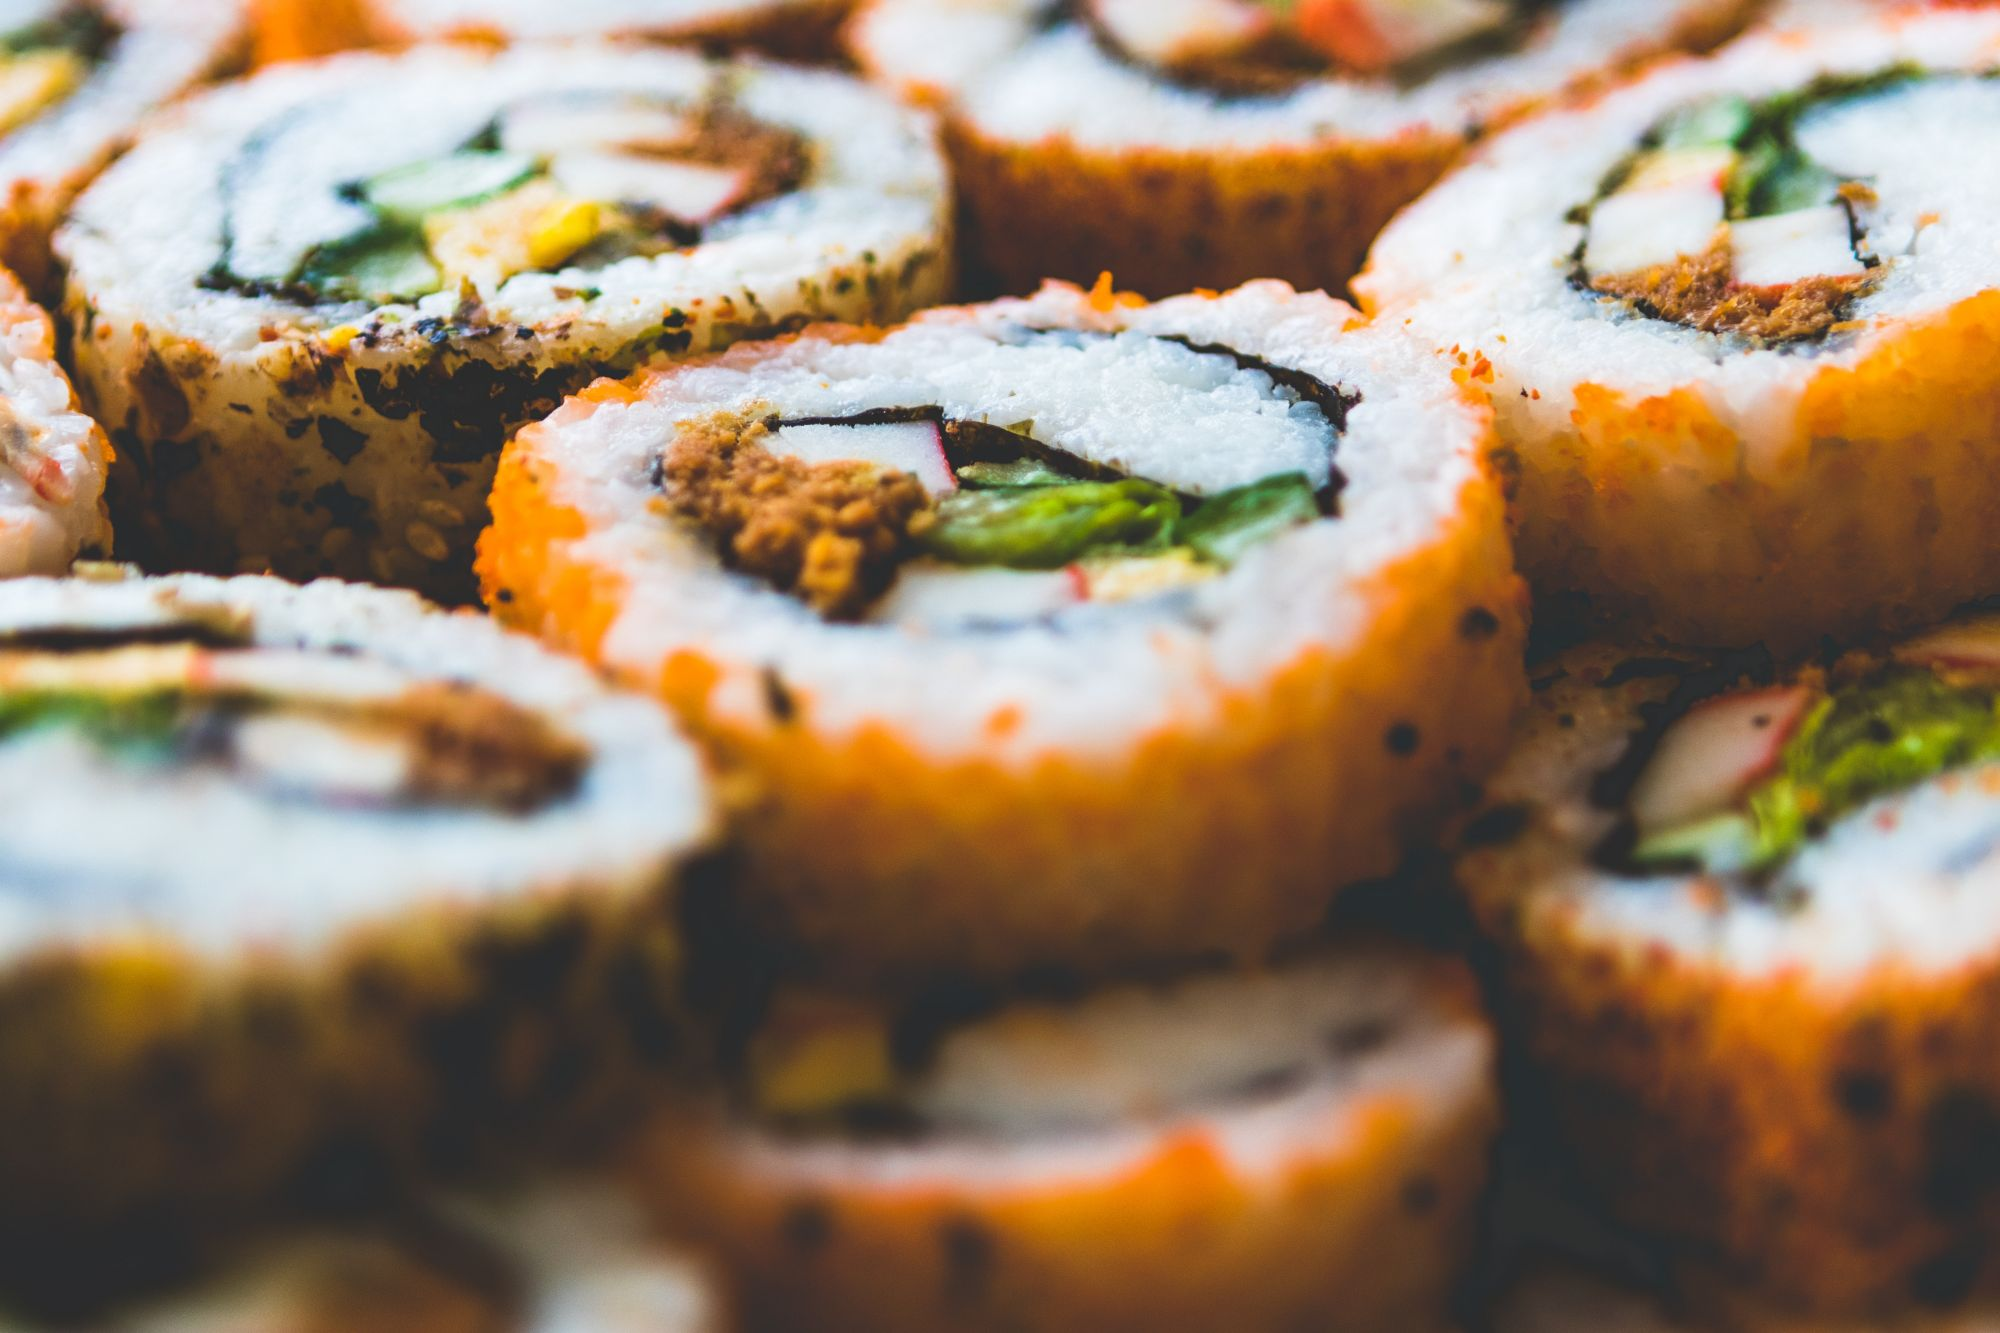 Try These Simple Recipes to Make the Instagram-Famous Sushi Bake at Home